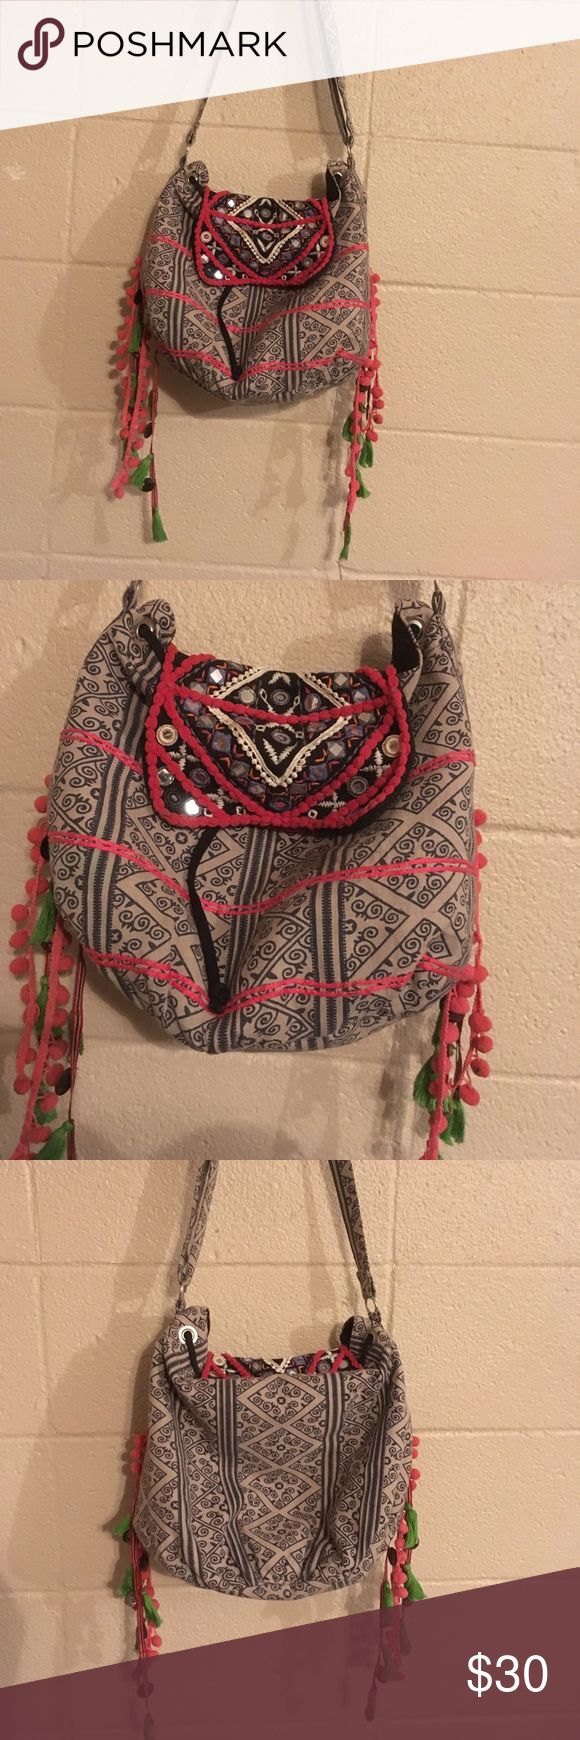 Embroidered Purse embroidered purse with glass embellishments and tassel detail. Excellent condition, basically new! Medium sized bag, from UO. Urban Outfitters Accessories